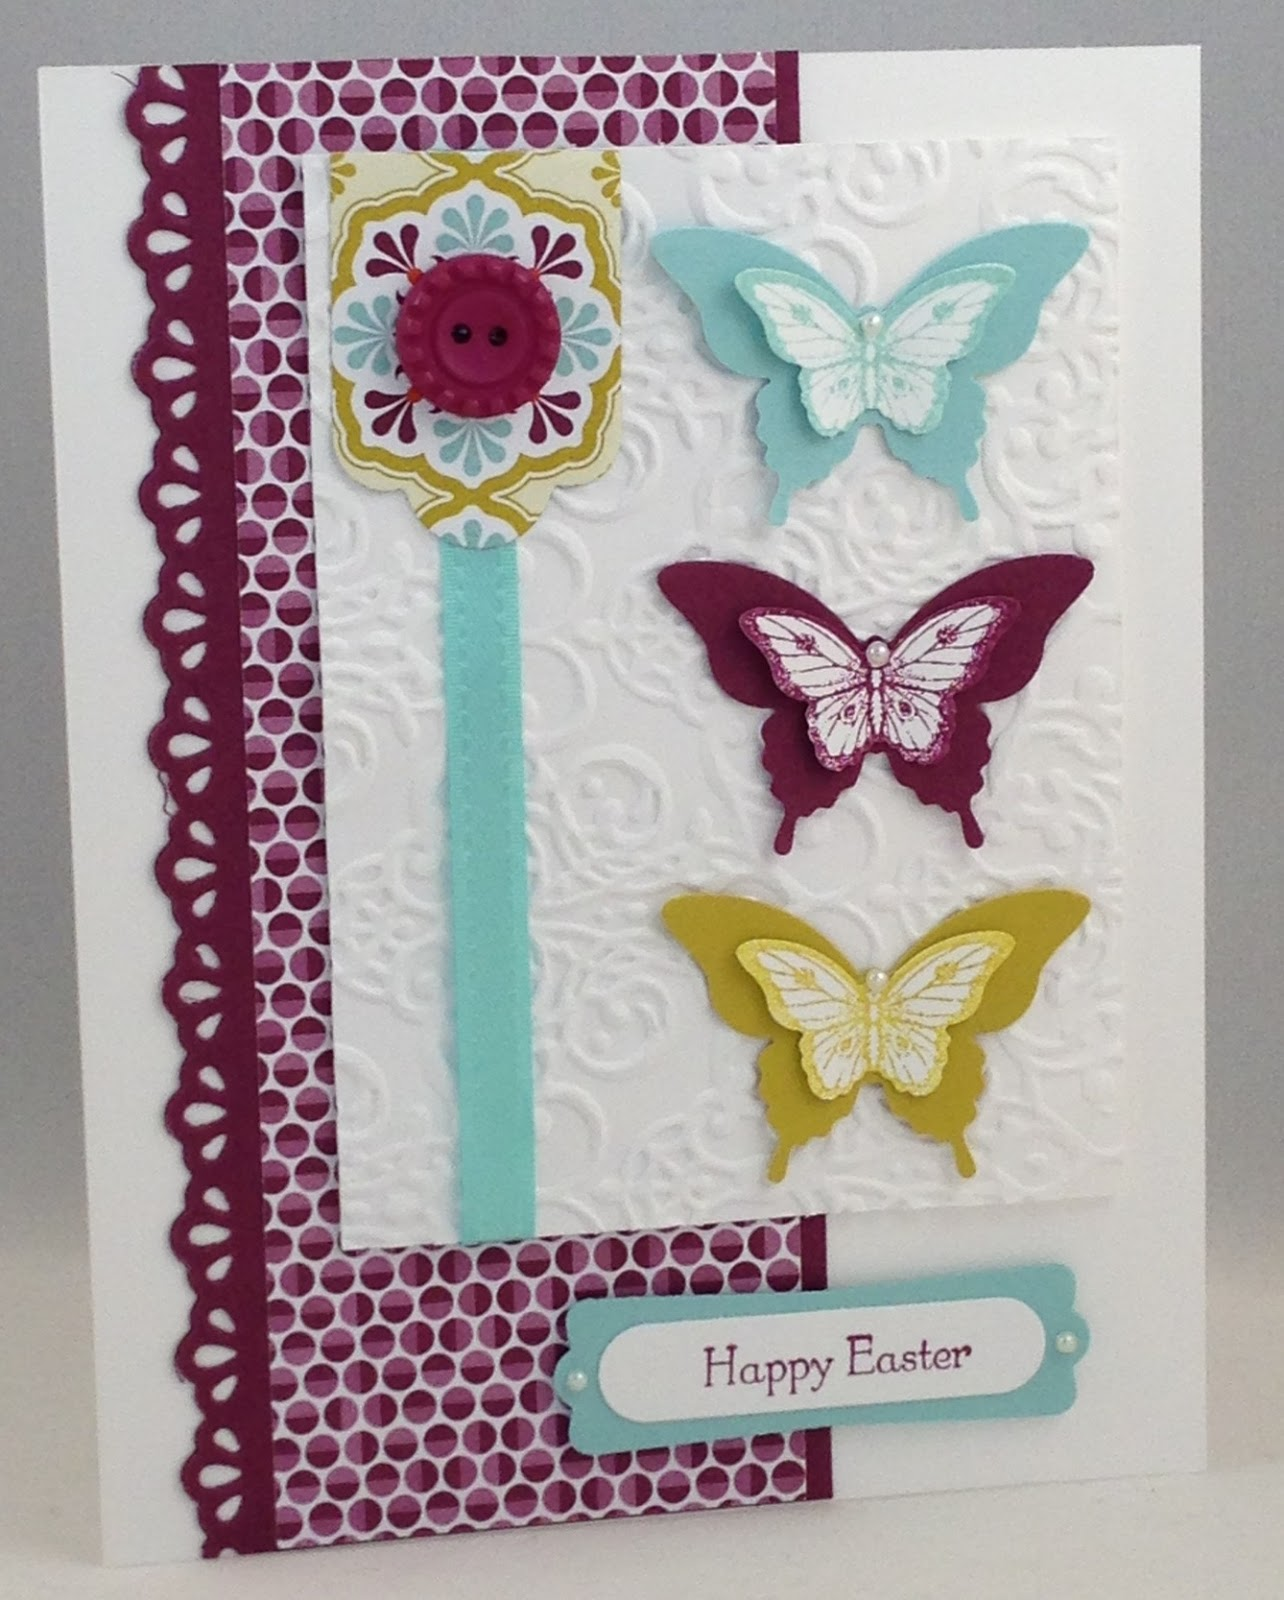 Stampintx stampin up easter and butterfly card ideas stampin up easter and butterfly card ideas negle Choice Image